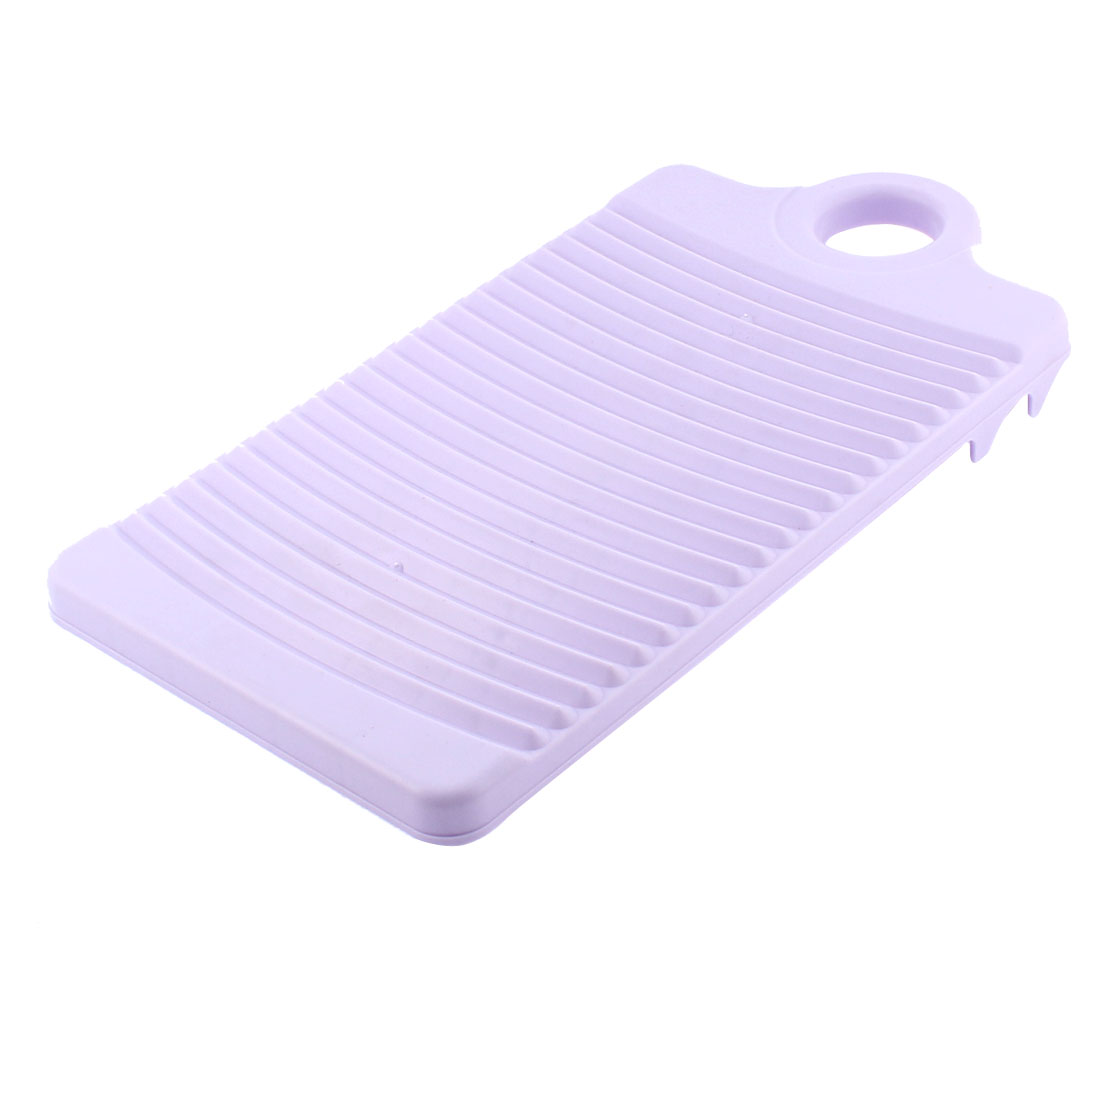 Plastic Rectangle Washboard Clothes Washing Board 12.4 Inch Length Light Purple